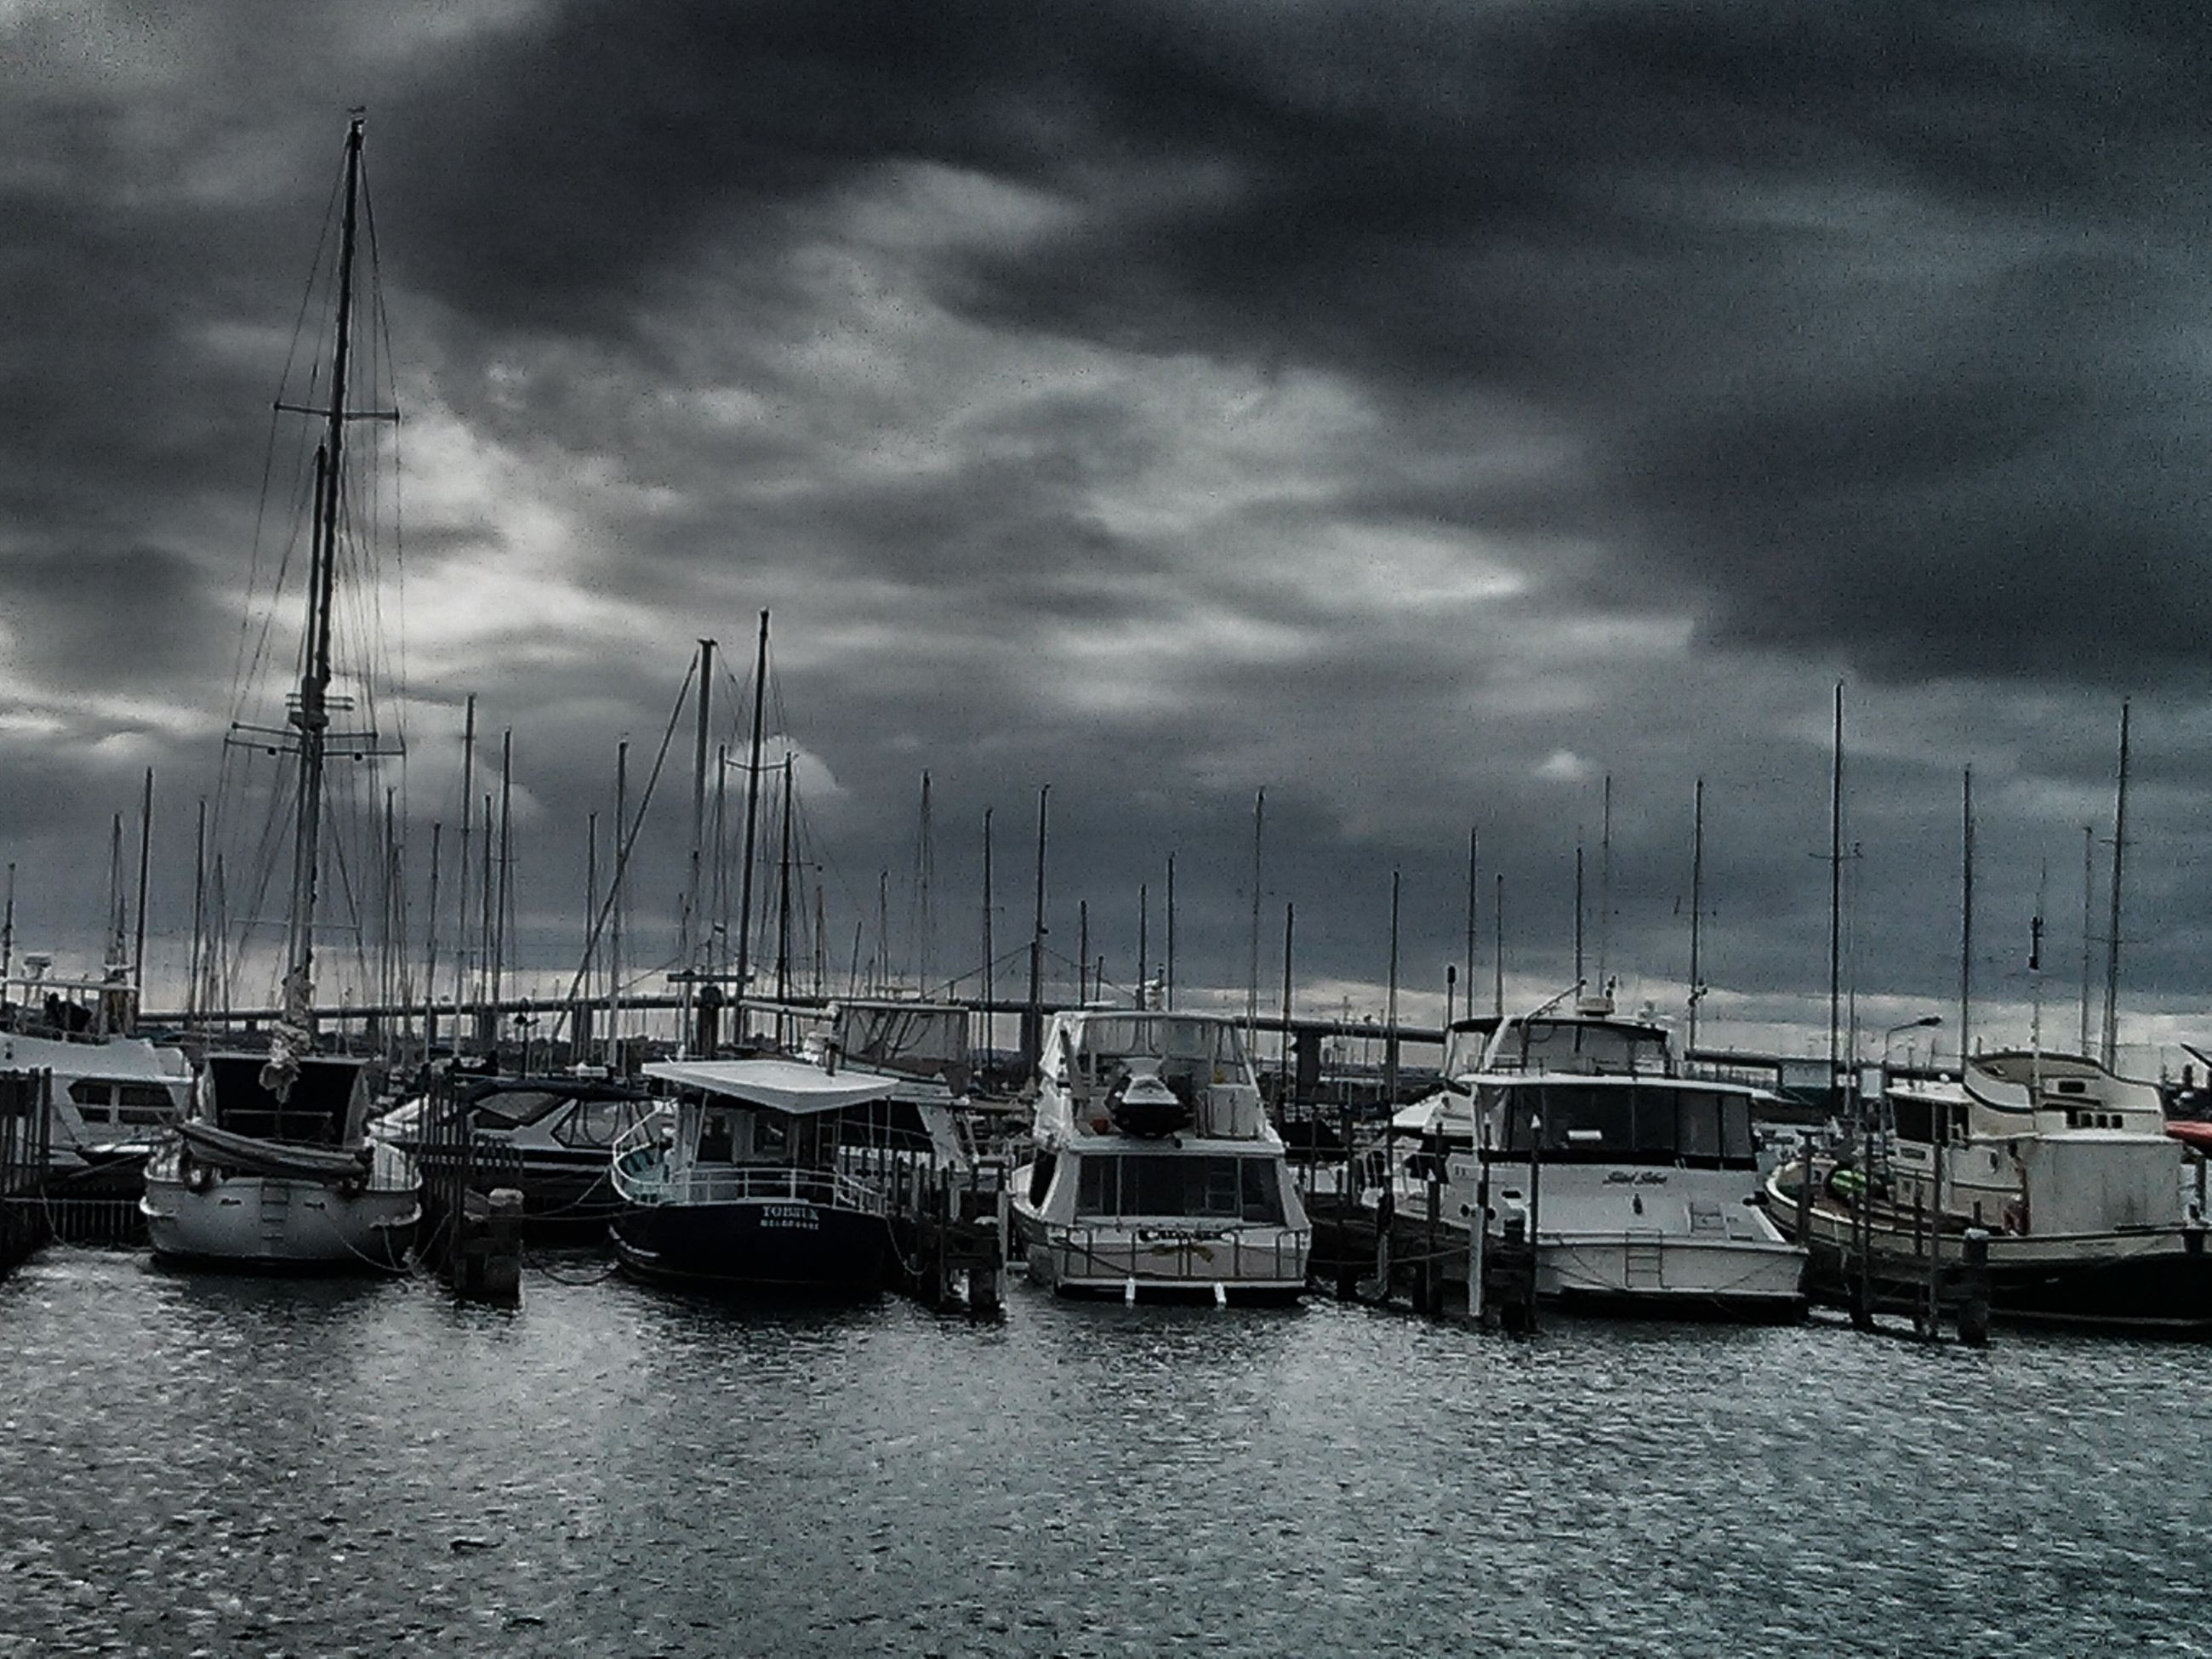 nautical vessel, transportation, moored, boat, mode of transport, water, sky, sea, cloud - sky, cloudy, mast, harbor, sailboat, cloud, waterfront, nature, in a row, tranquility, travel, marina